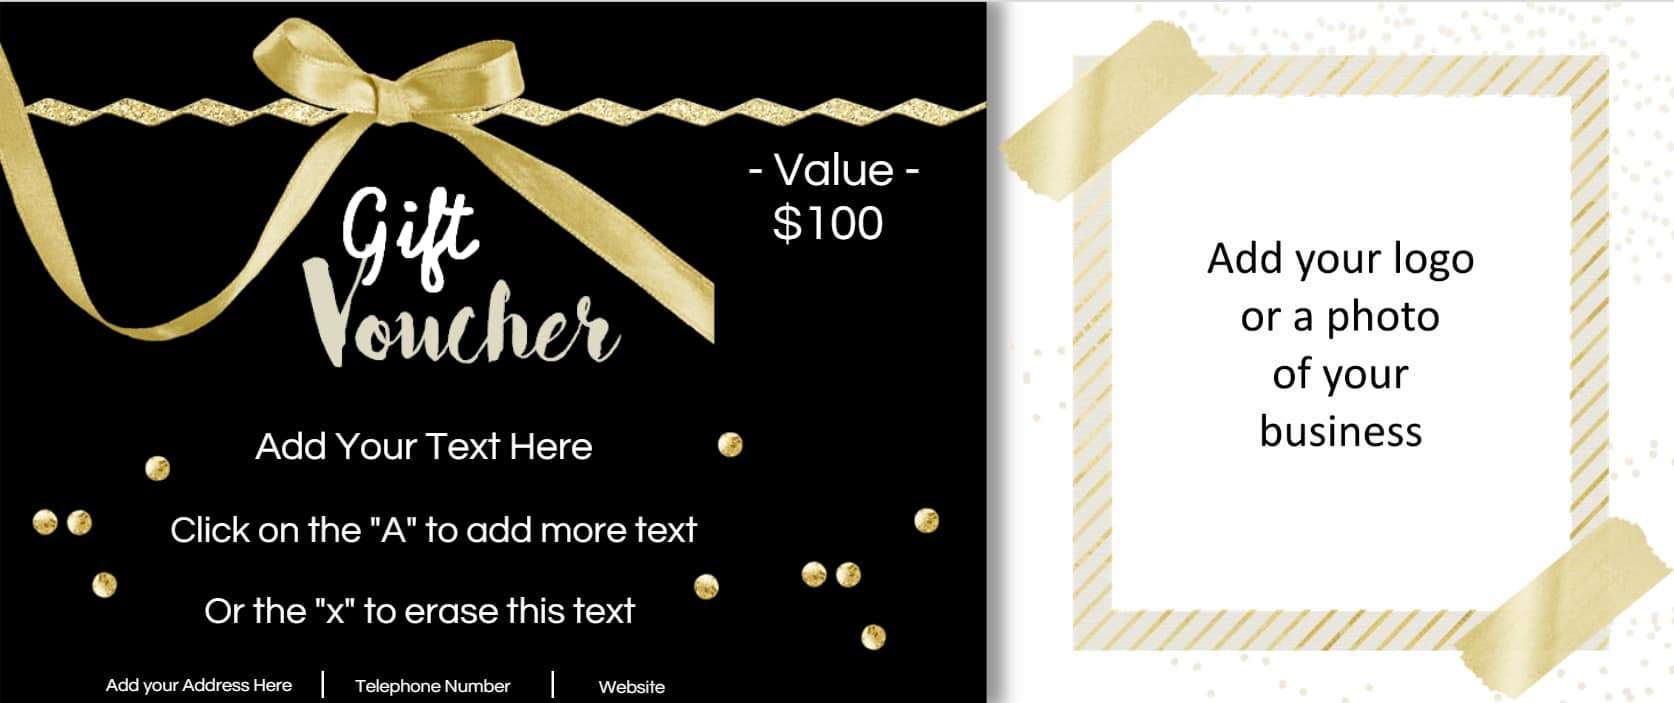 Lovely Black And Gold Voucher With A Gold Ribbon And Space To Add A Photo Of Your To Gift Vouchers Templates